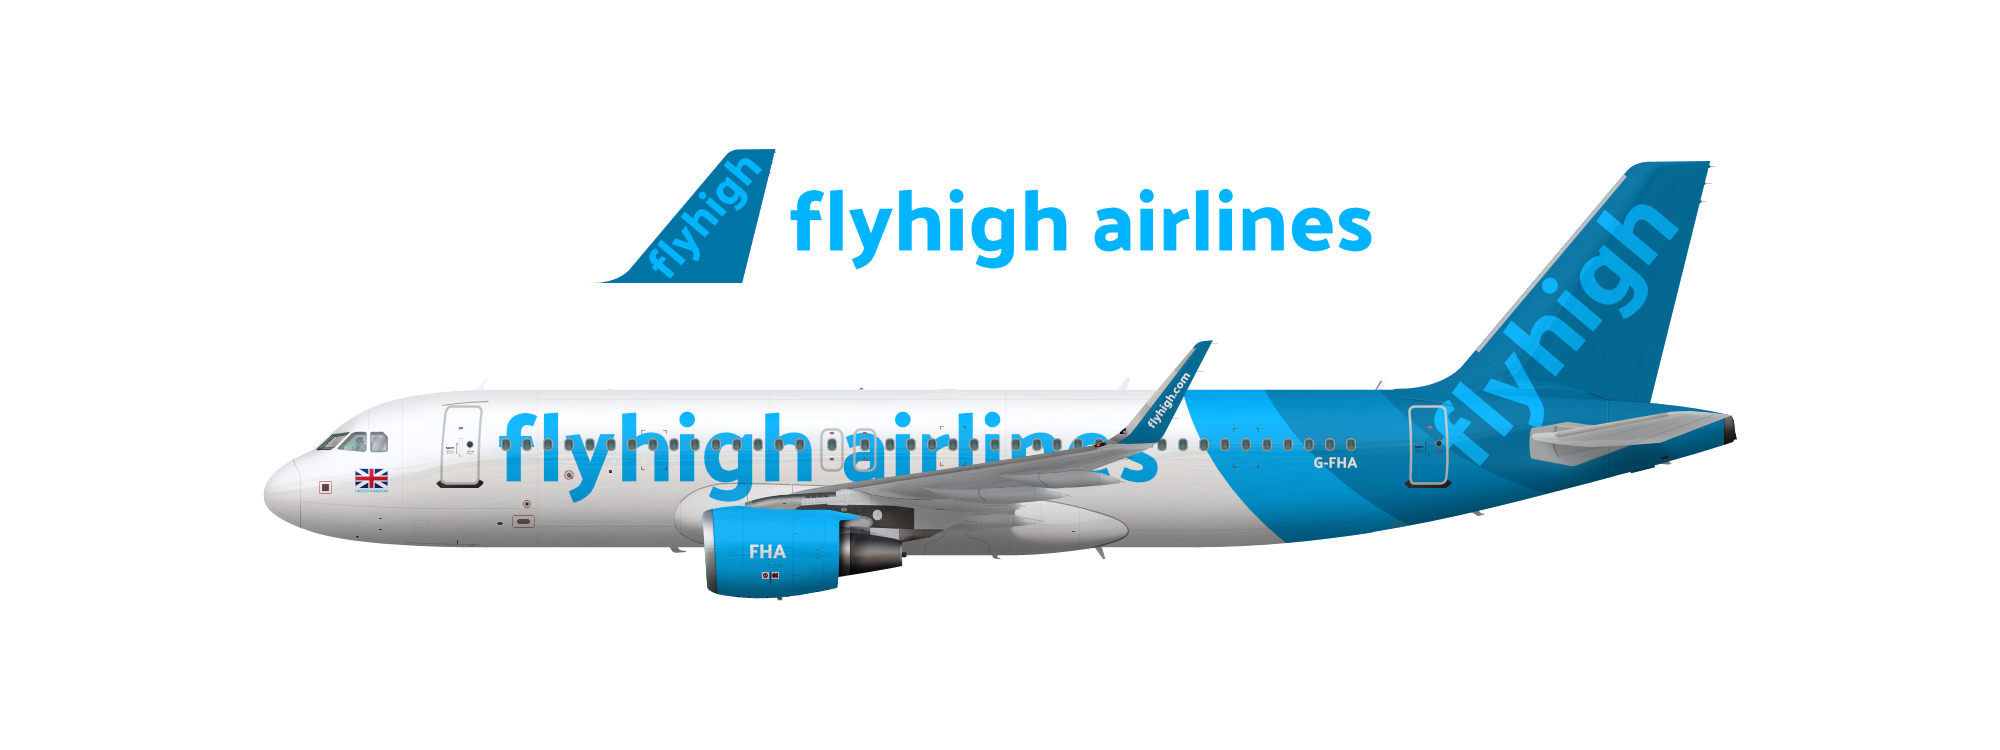 Flyhigh Airlines